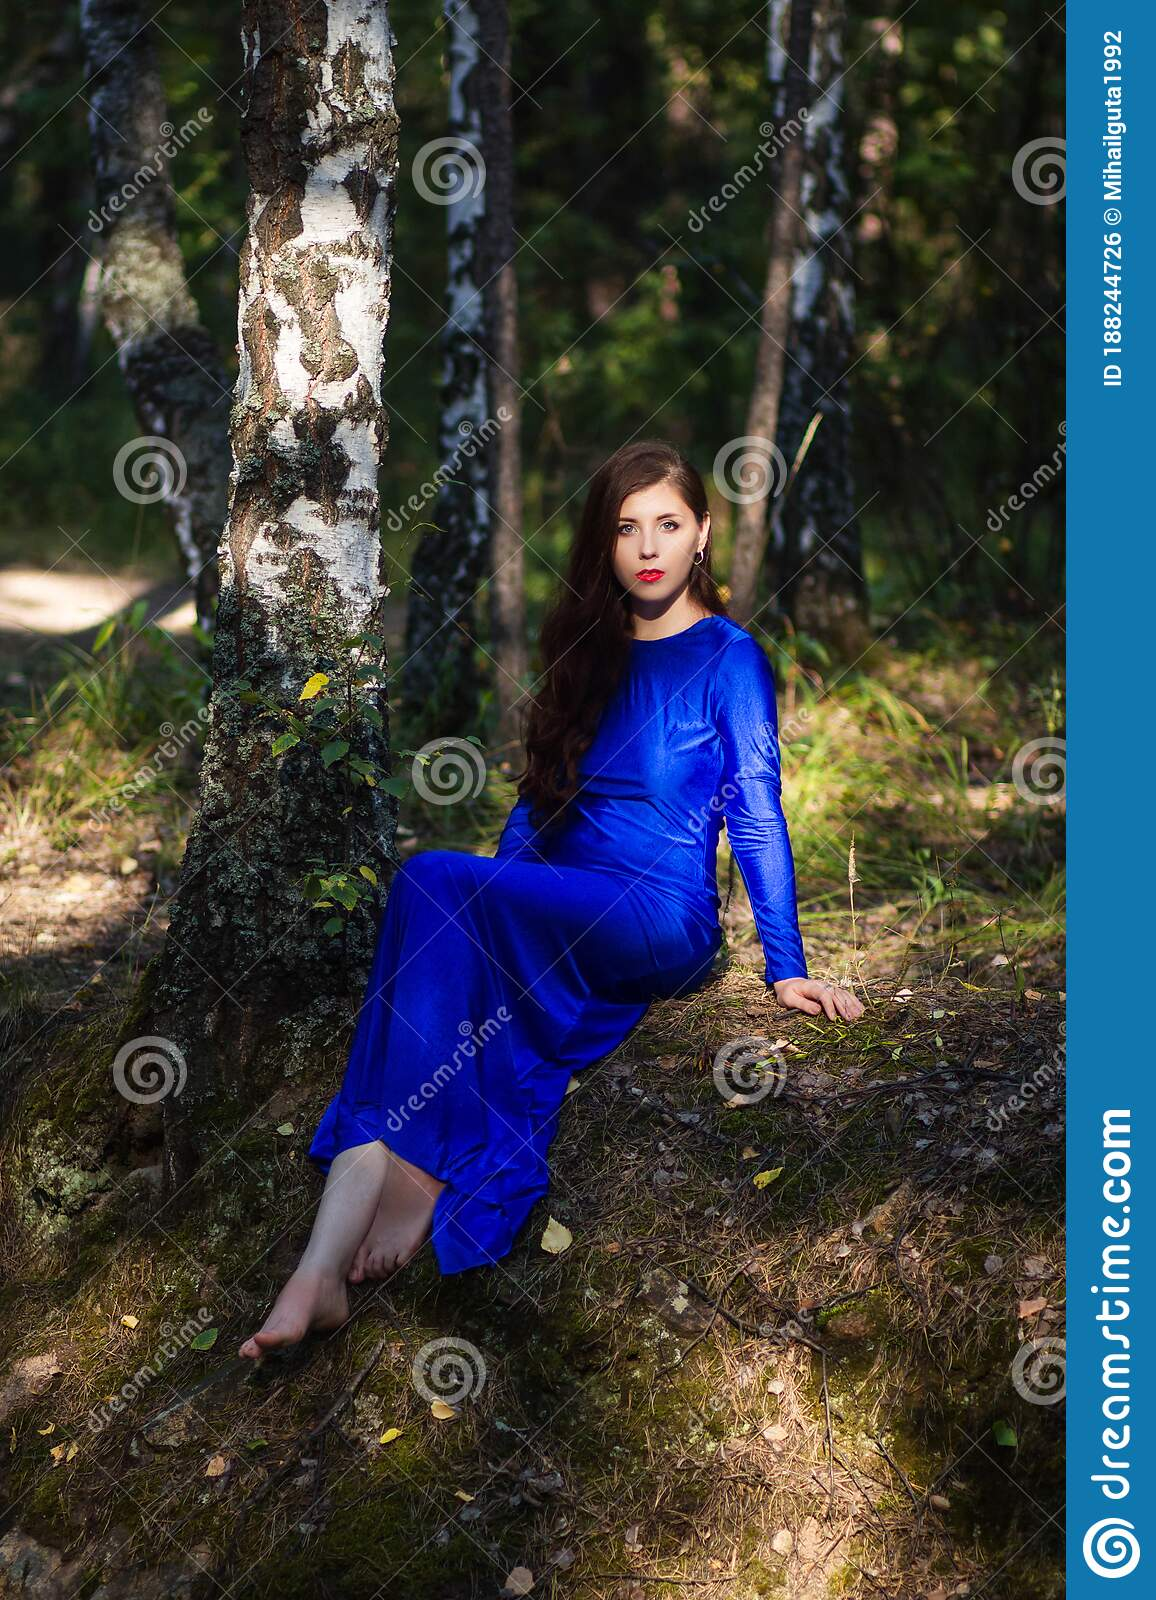 https://thumbs.dreamstime.com/z/beautiful-young-woman-blue-dress-sitting-near-tree-over-cliff-against-forest-background-beautiful-young-woman-188244726.jpg